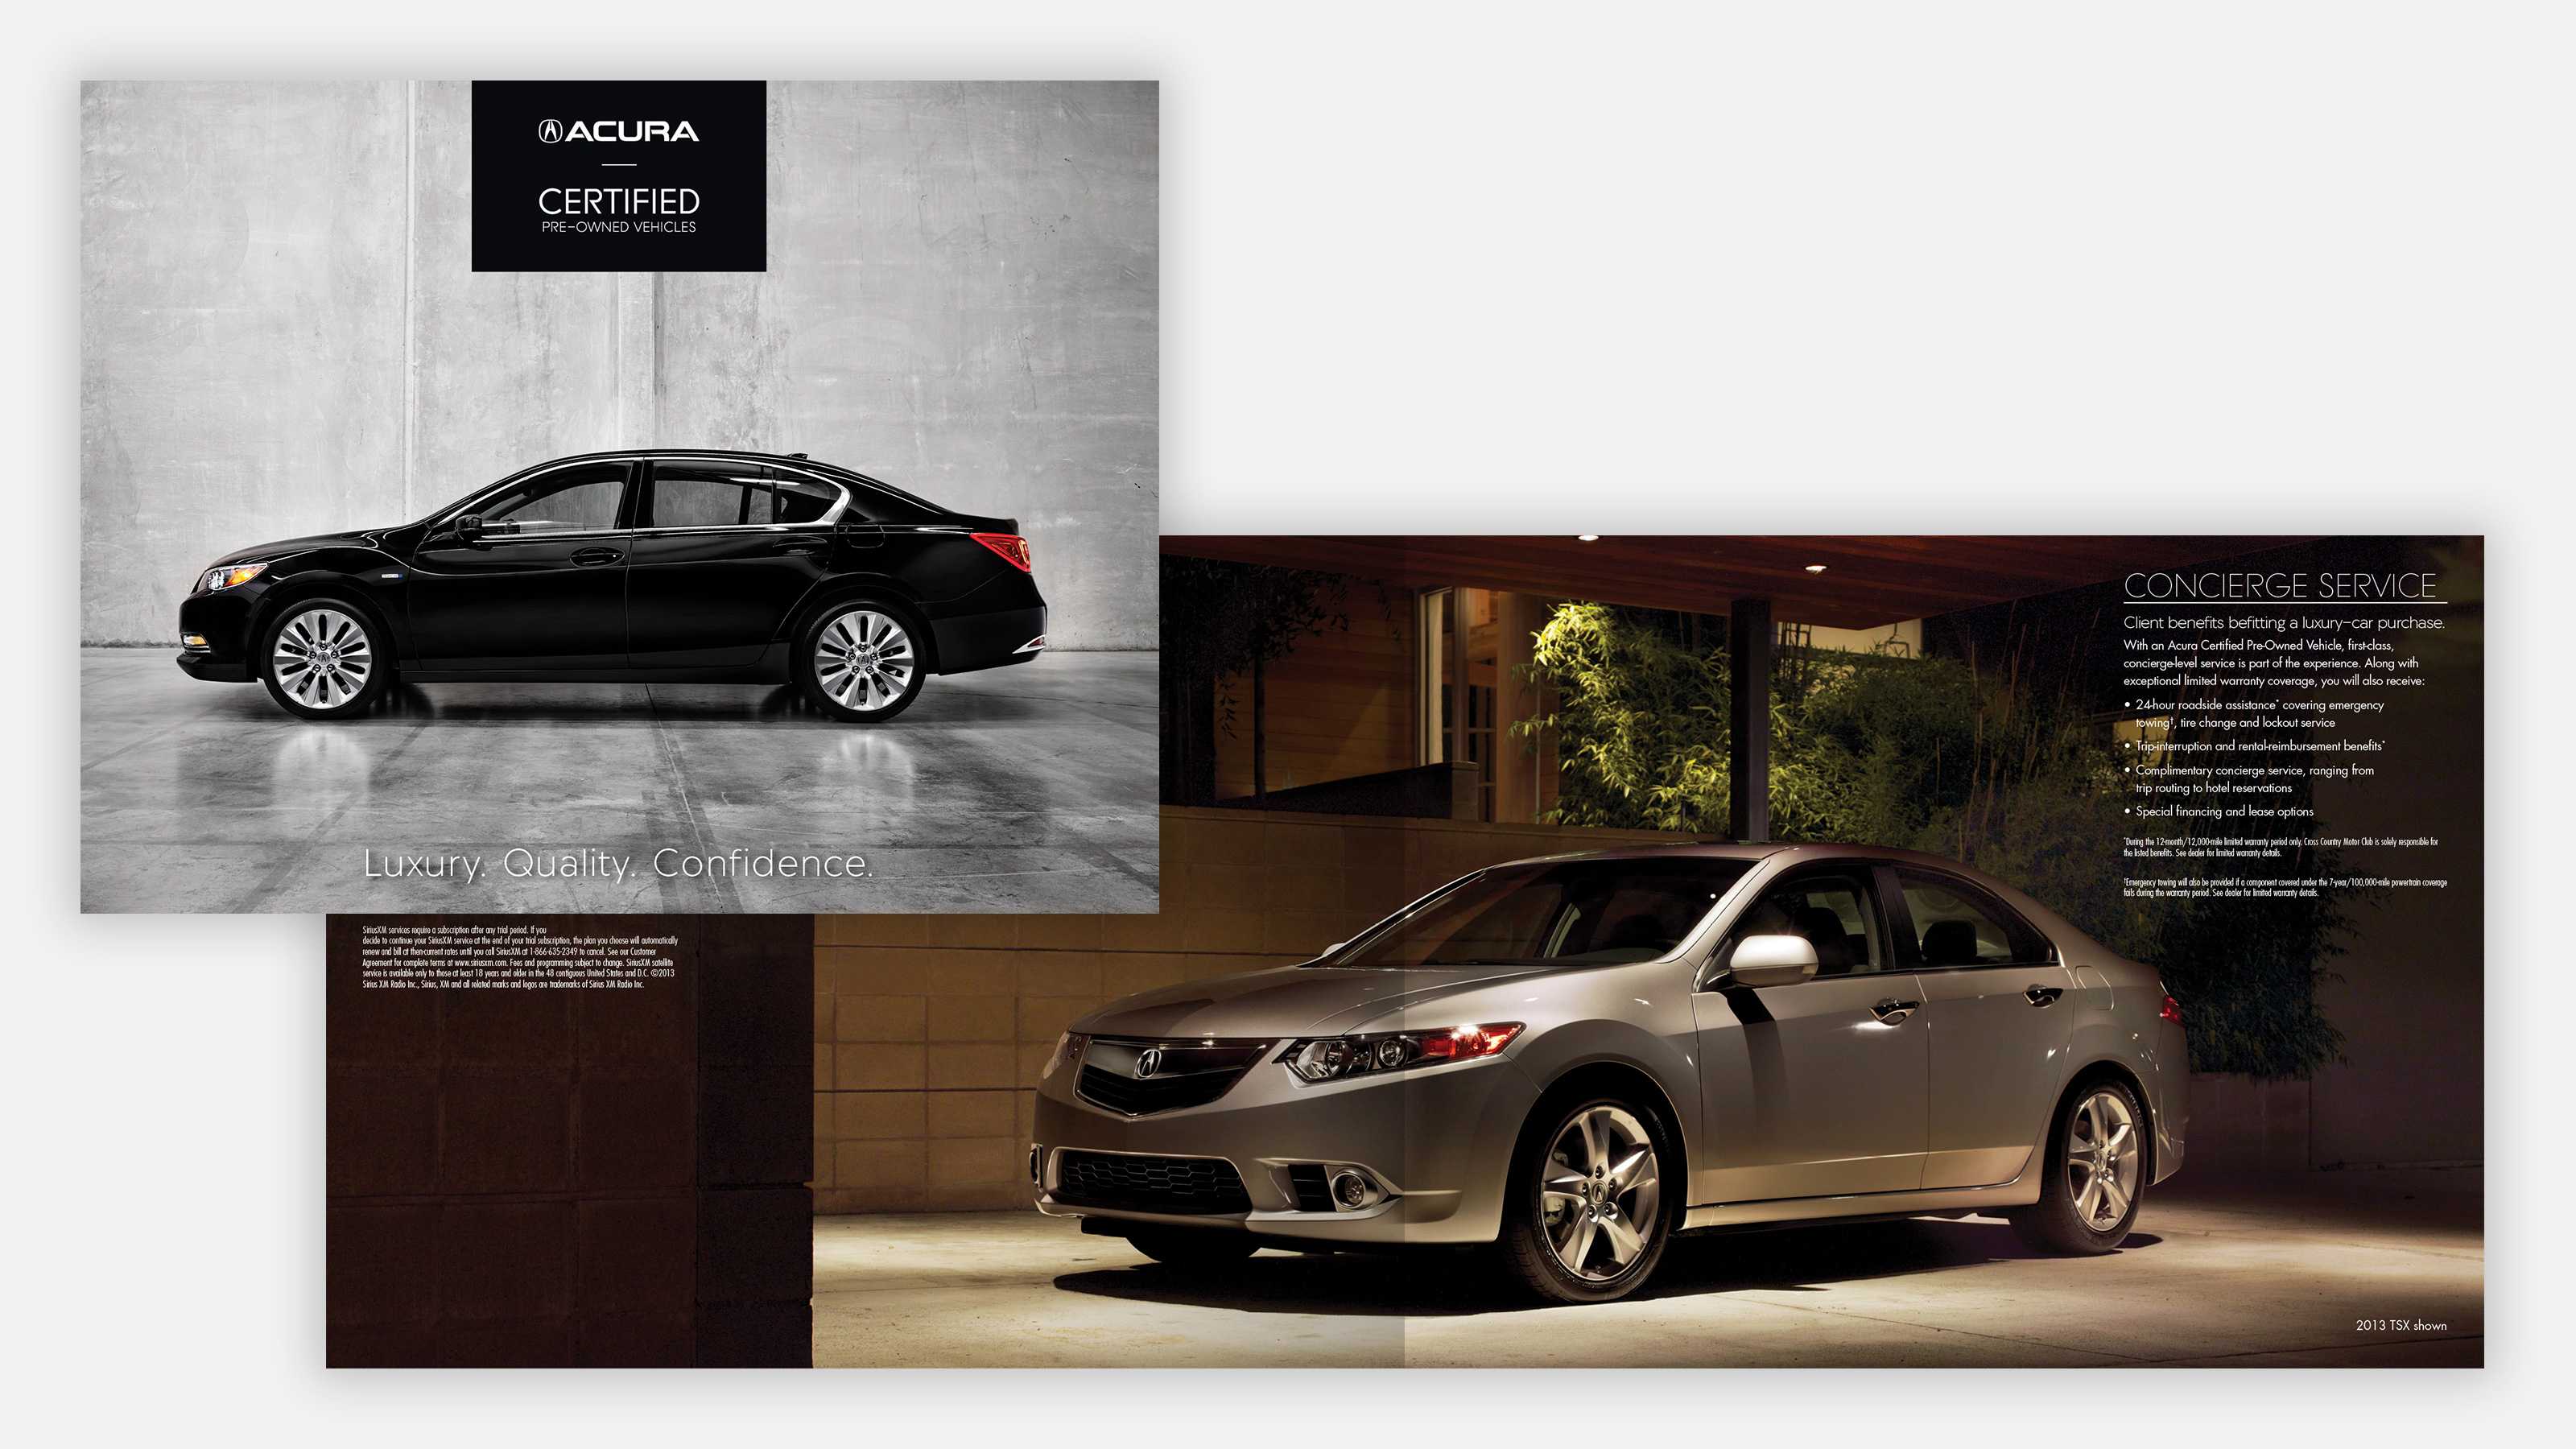 Acura Certified Pre-Owned vehicles